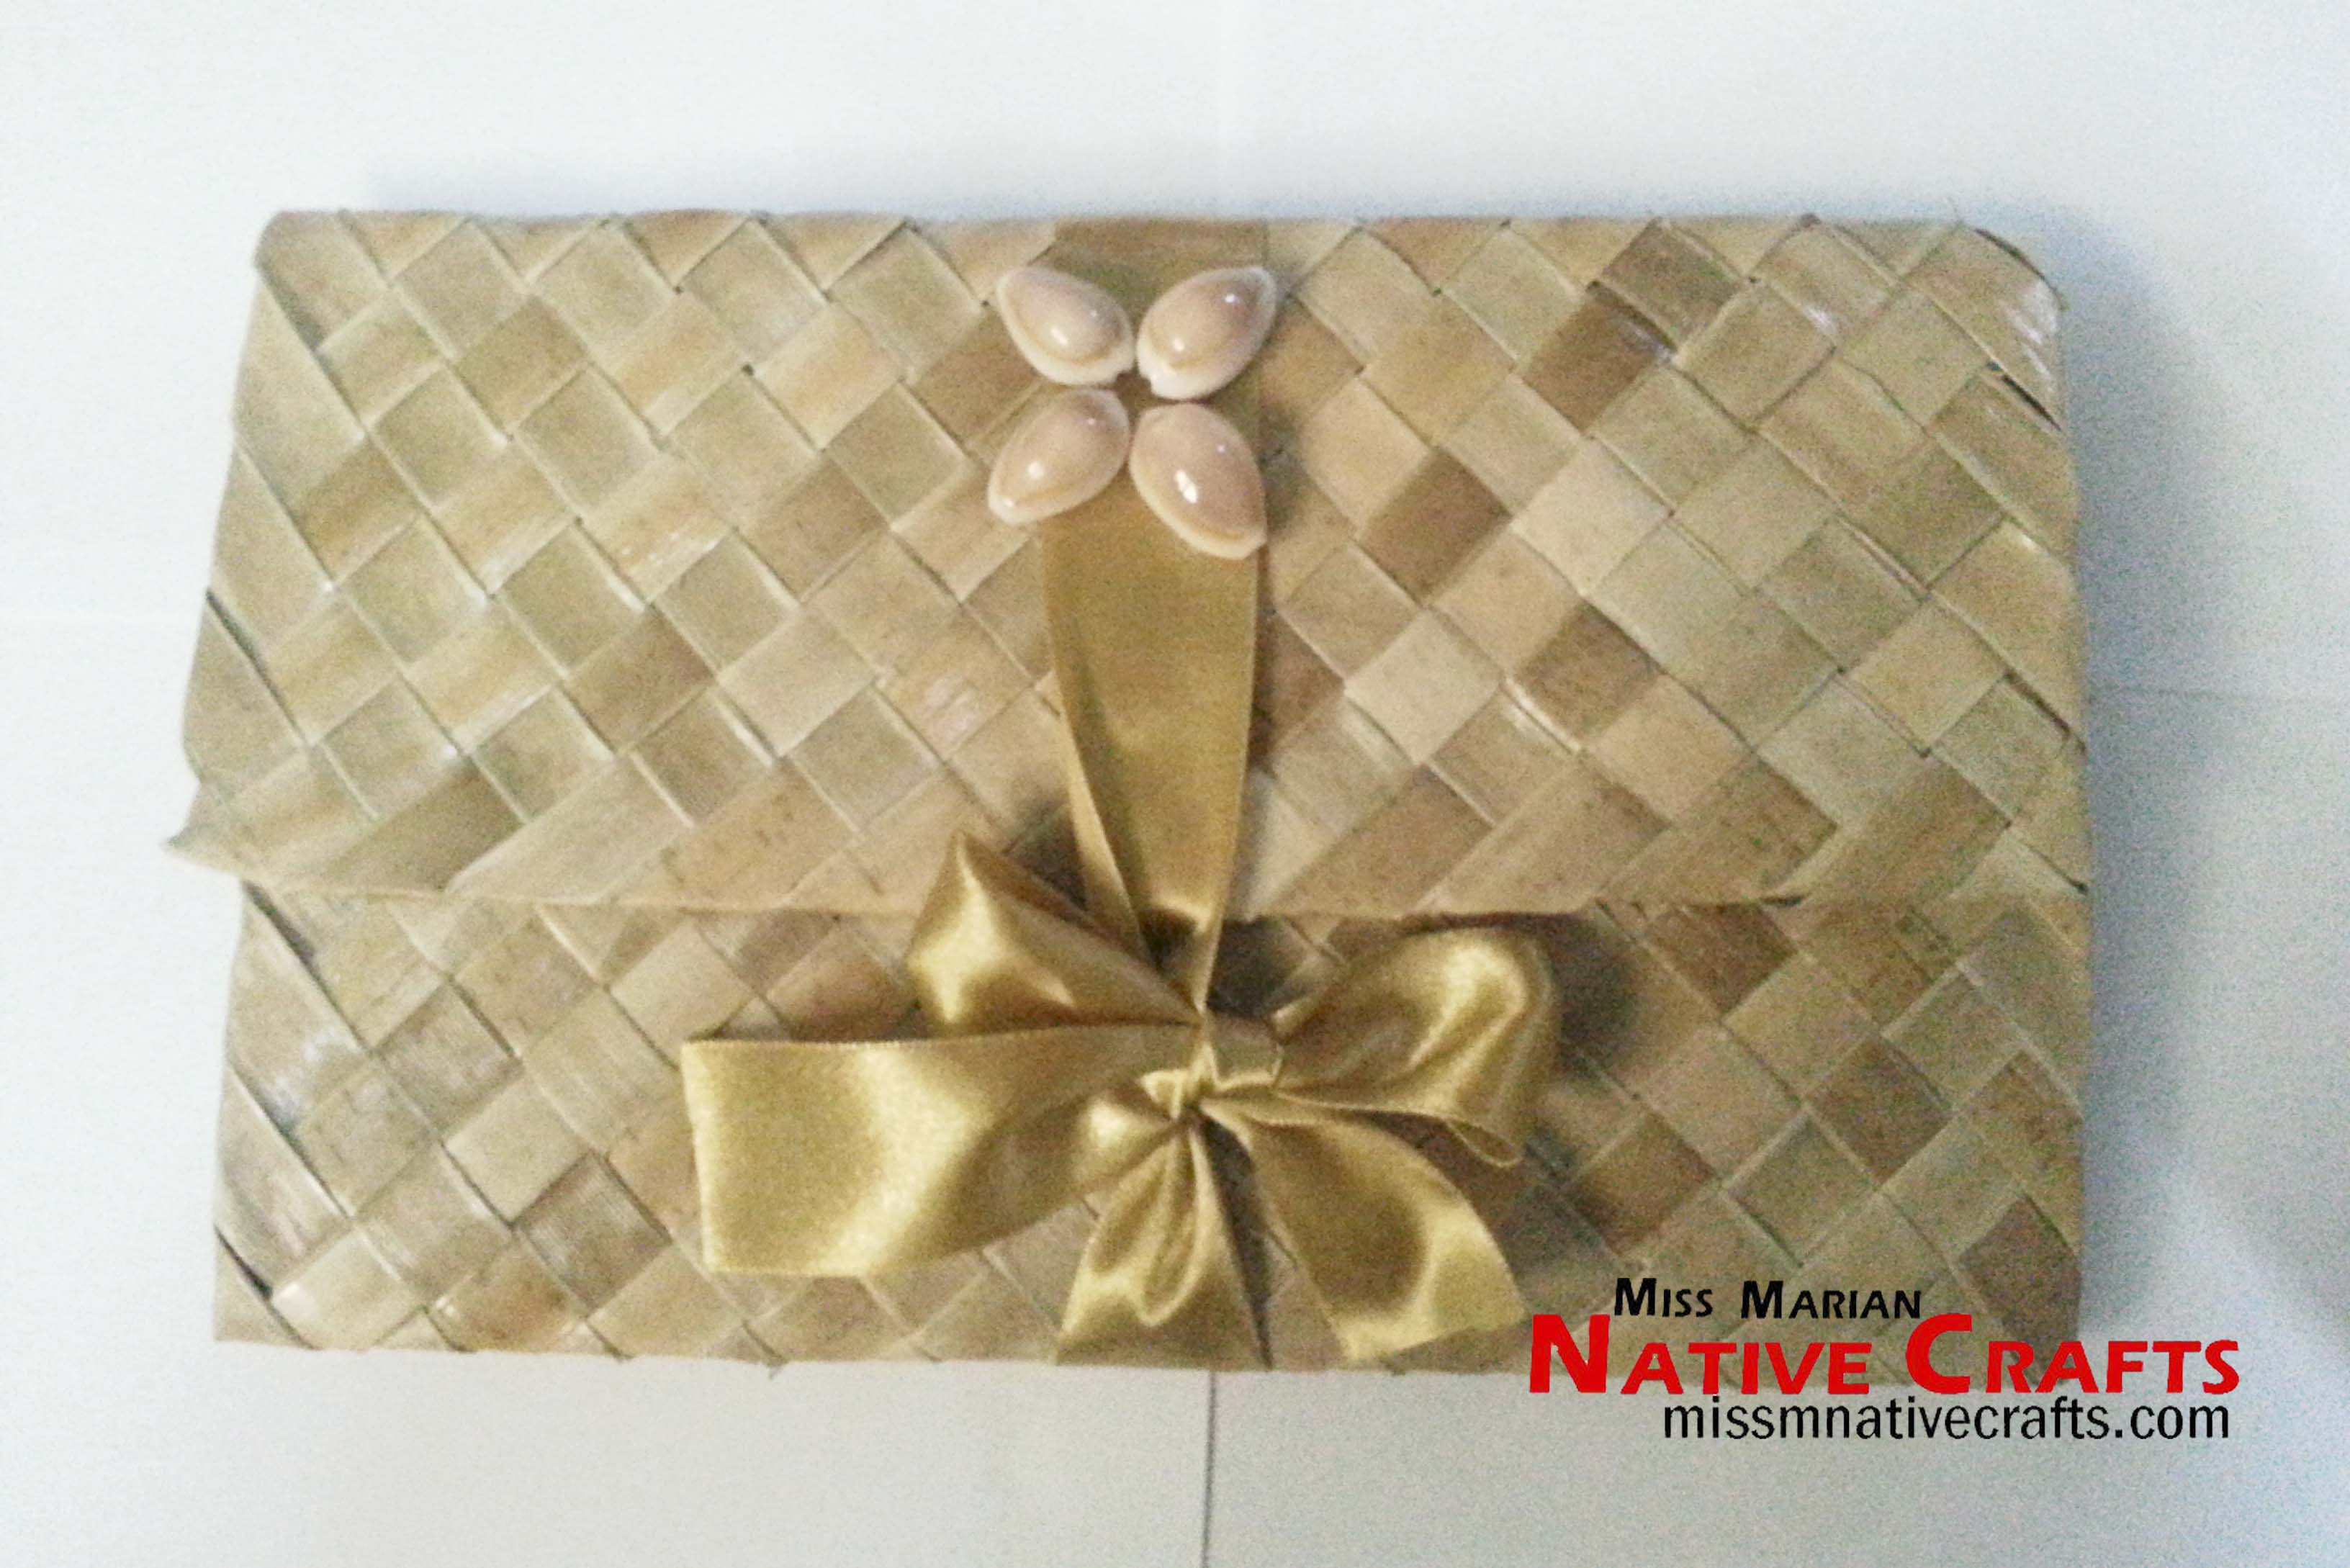 00 Previous Next Product Description Personalized Lauhala Mat Into Eco Friendly Wedding Invitation Case